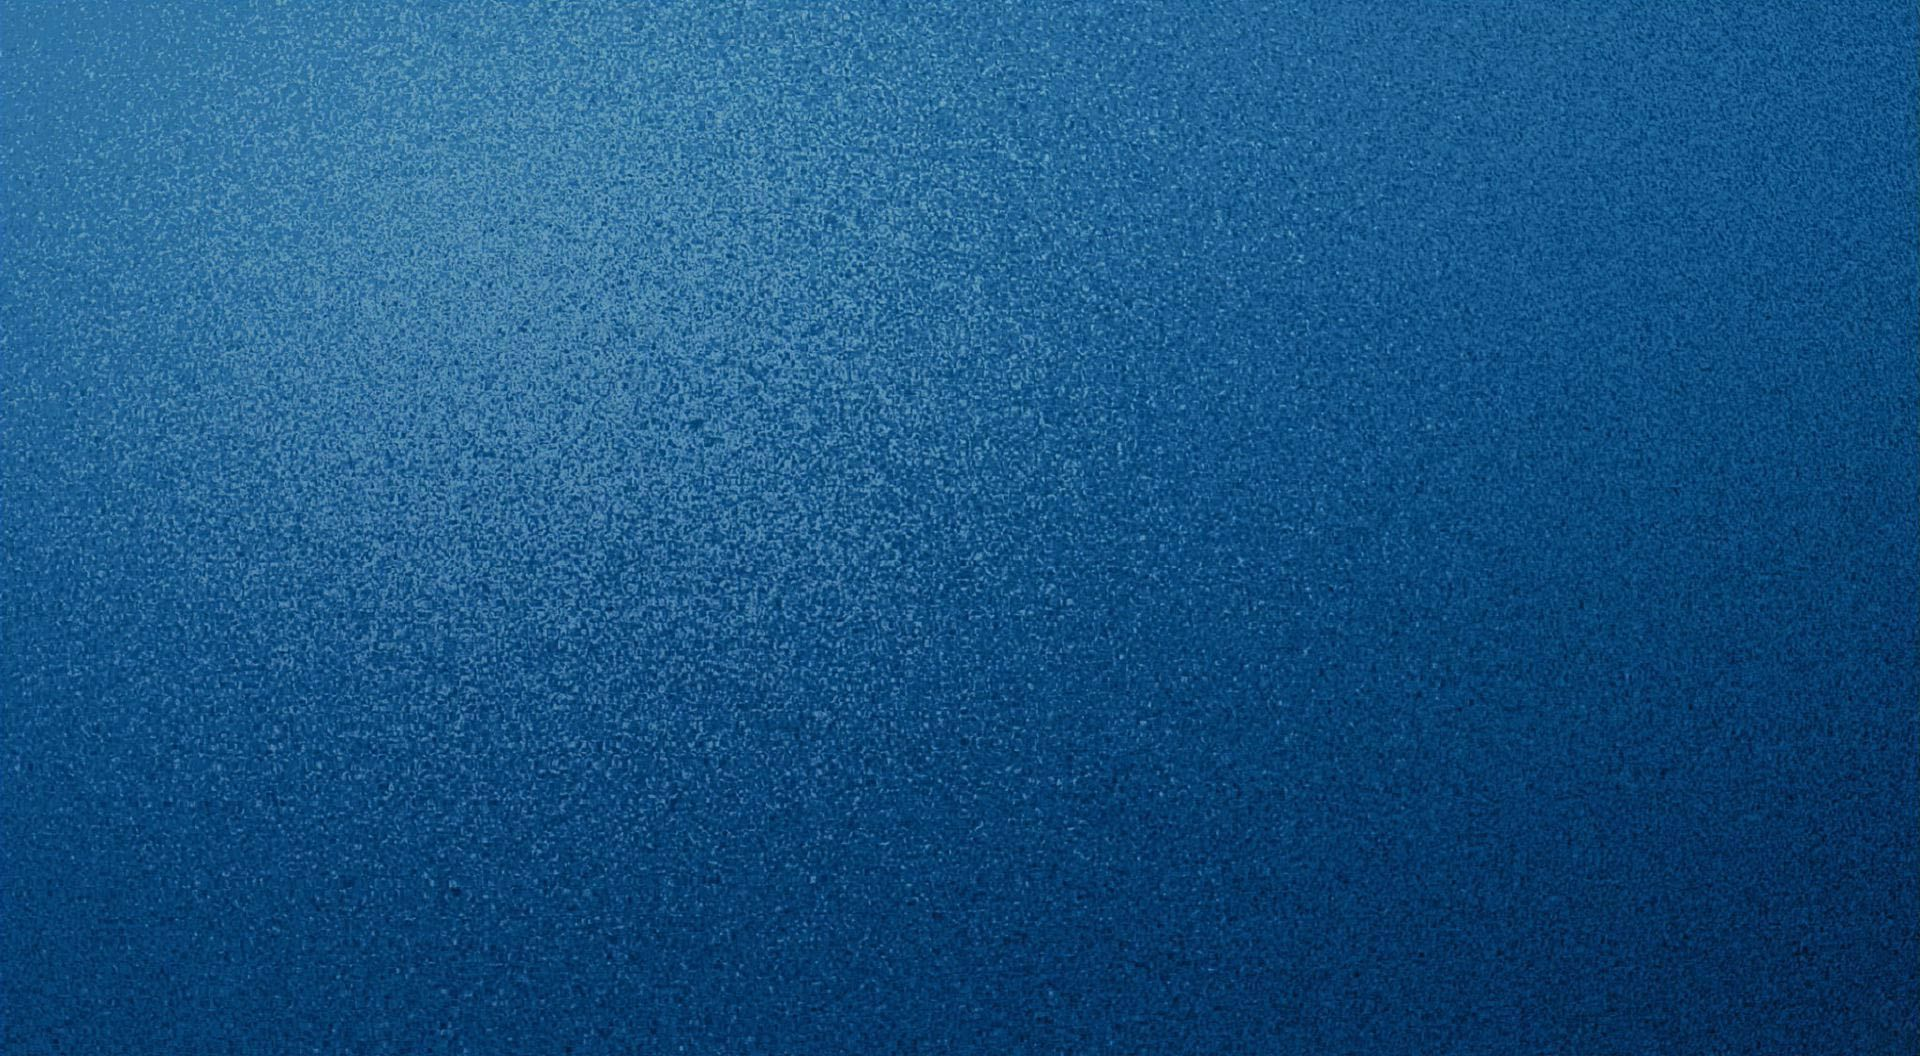 Blue Background Design Img13